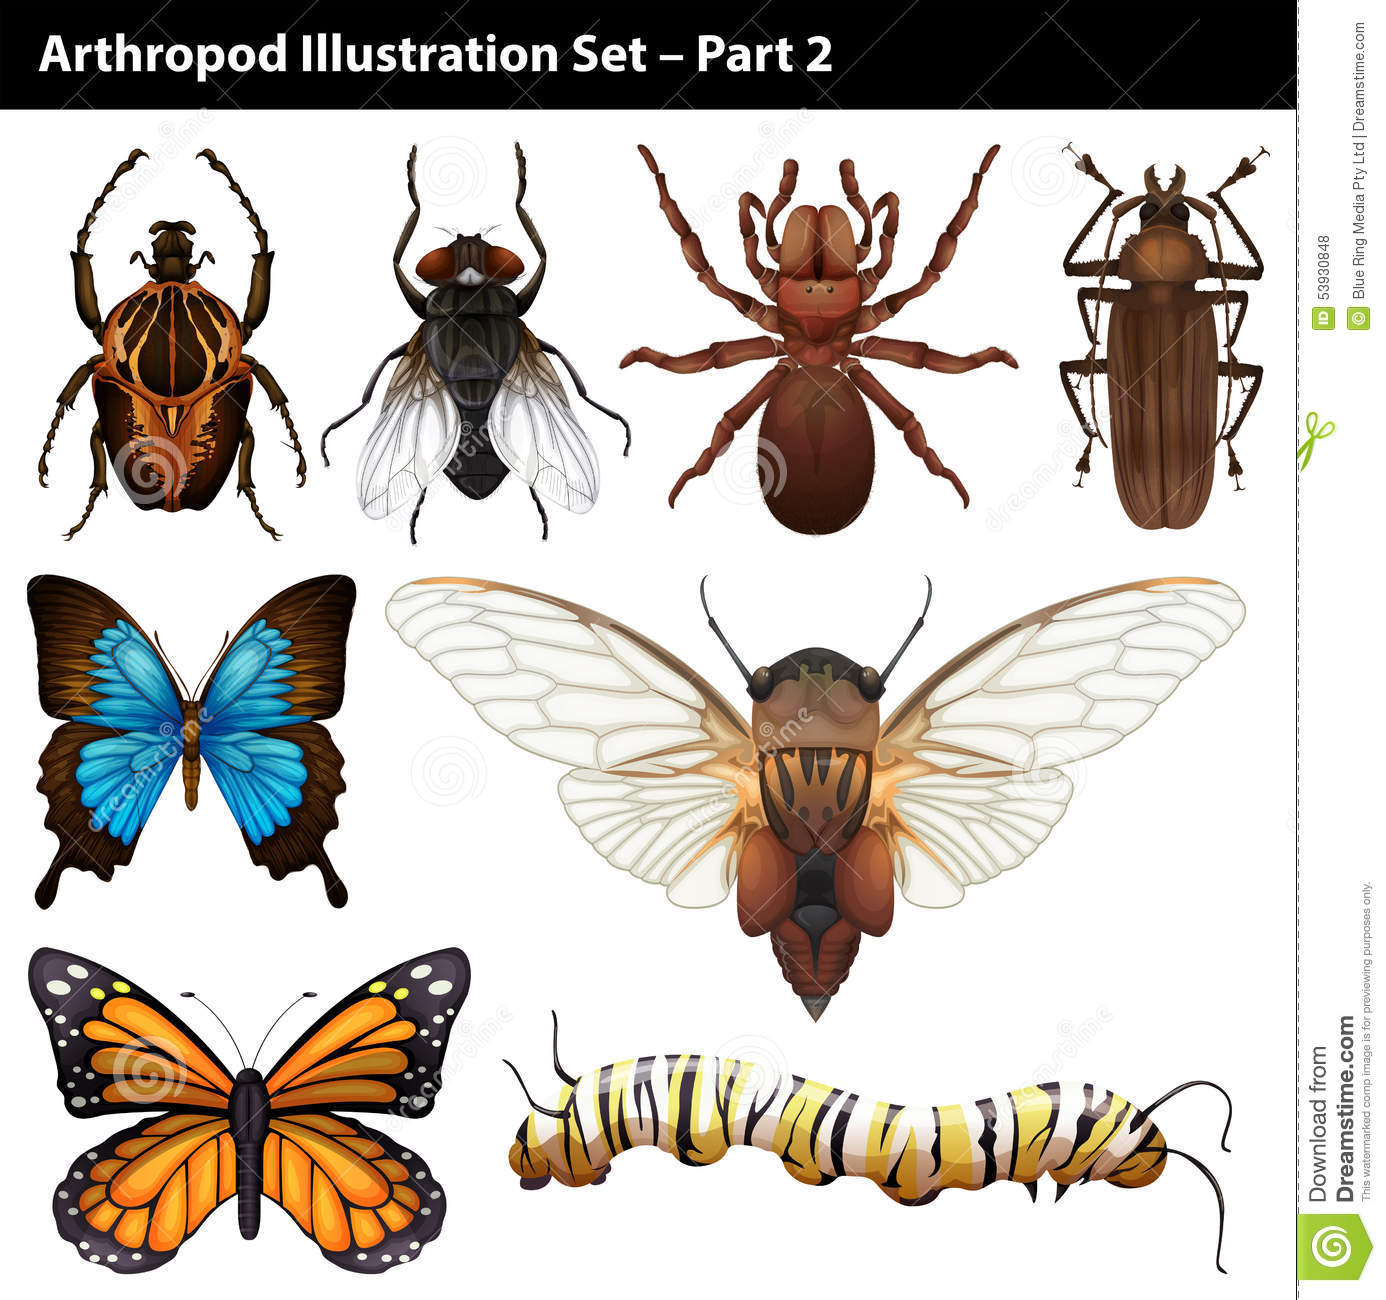 arthropods stock vector illustration of insects clip art of butterflies and flowers clip art of butterflies and caterpillars